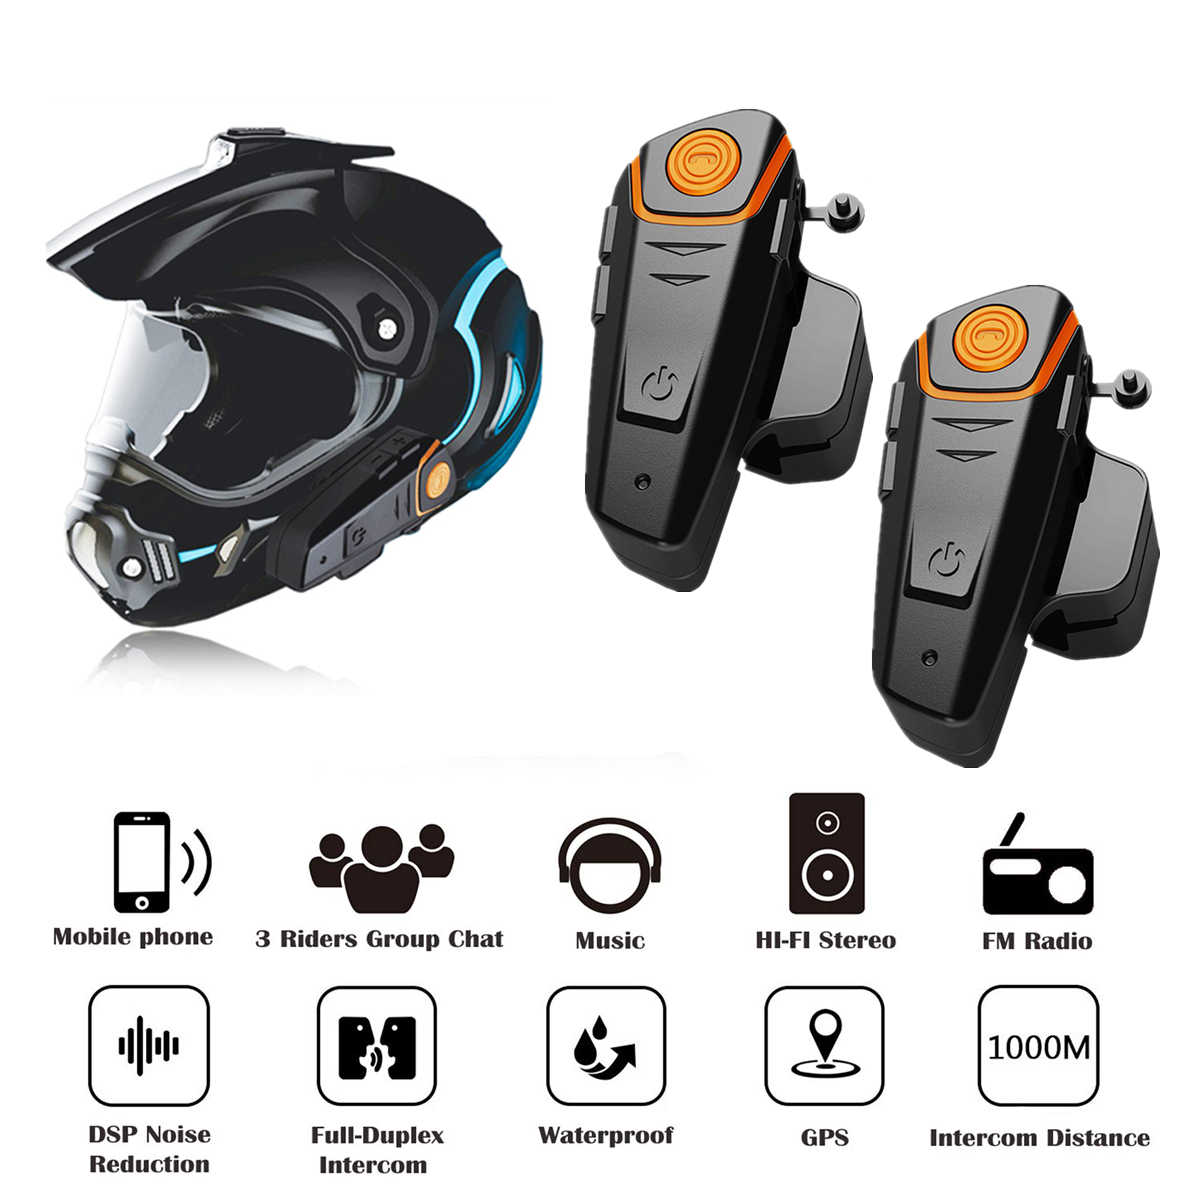 Original 2 Pcs BT-S2 PRO Sepeda Motor Helm Intercom Sepeda Motor Nirkabel Helm Bluetooth Headset Tahan Air FM Radio Interfon